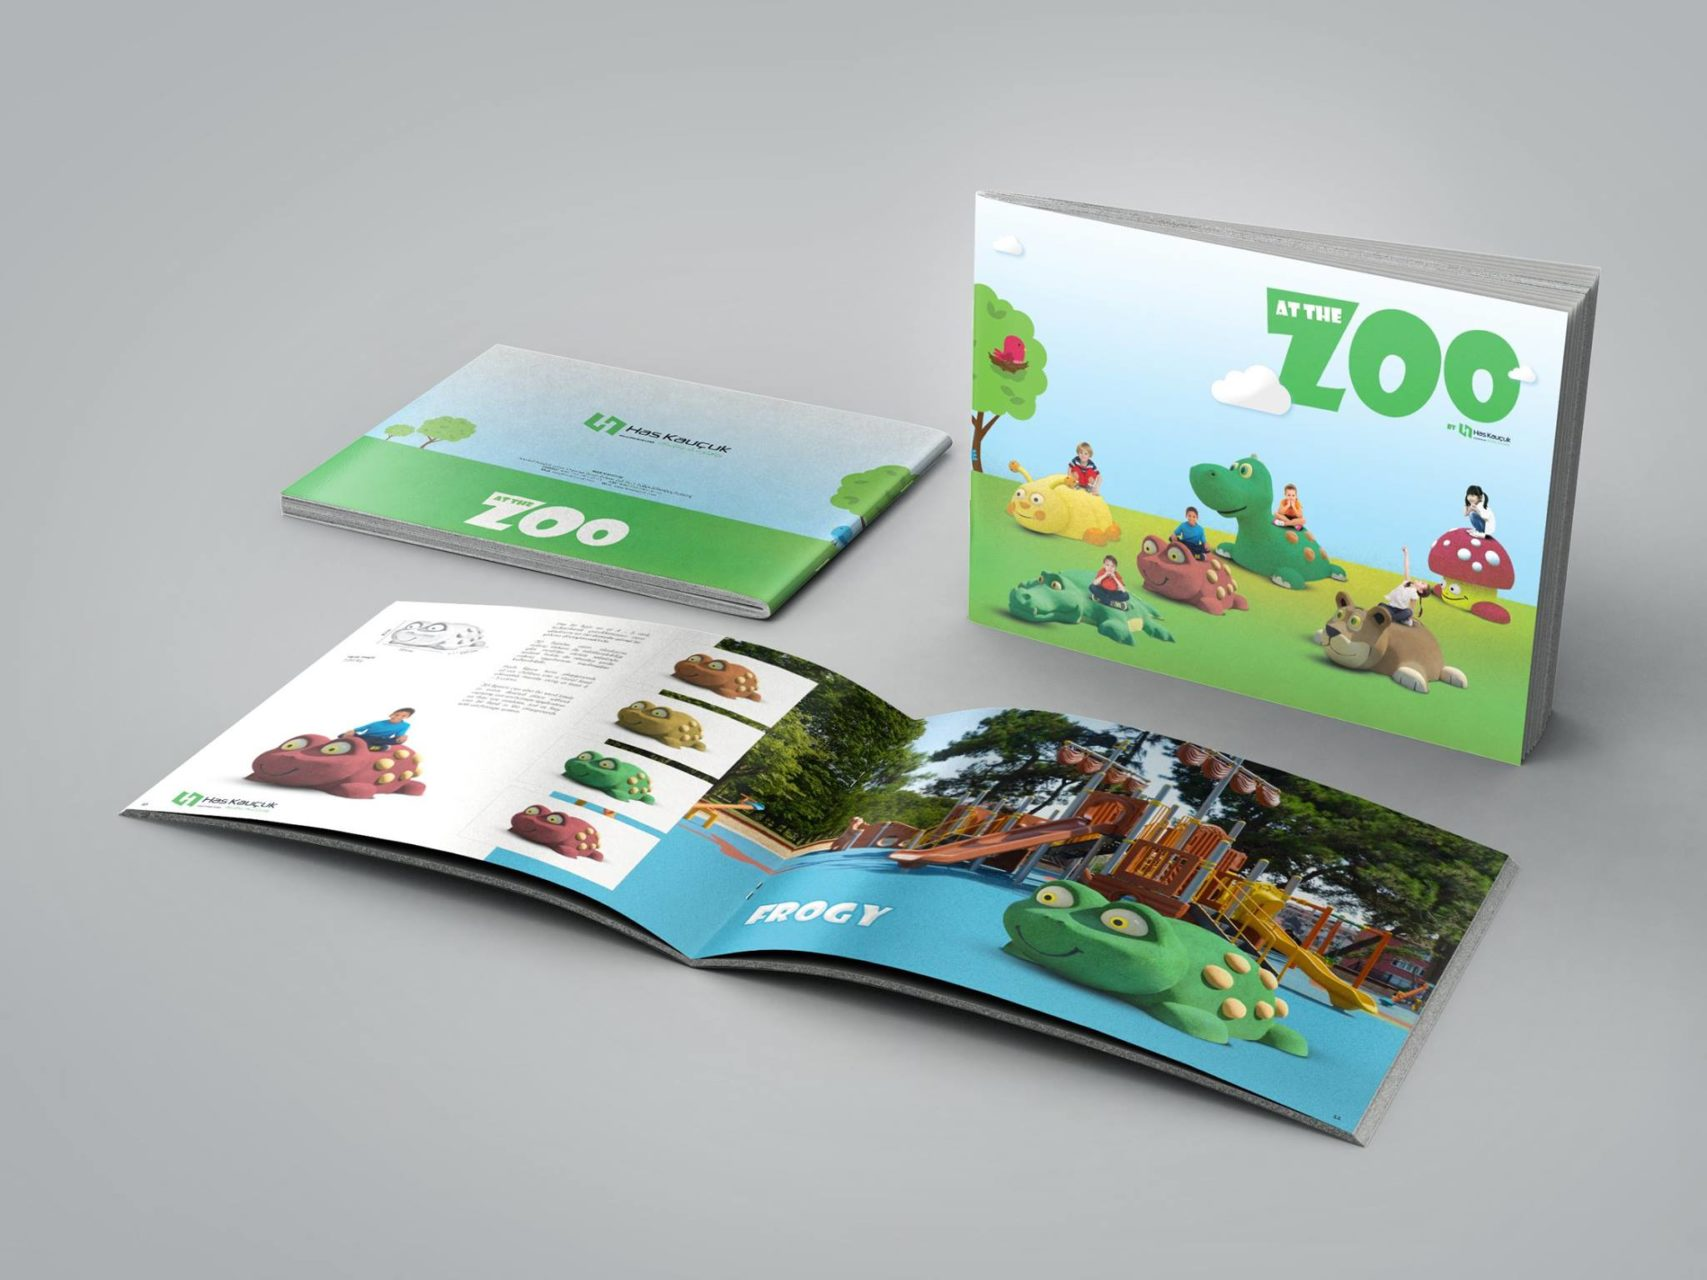 At The Zoo Katalog Tasarımı